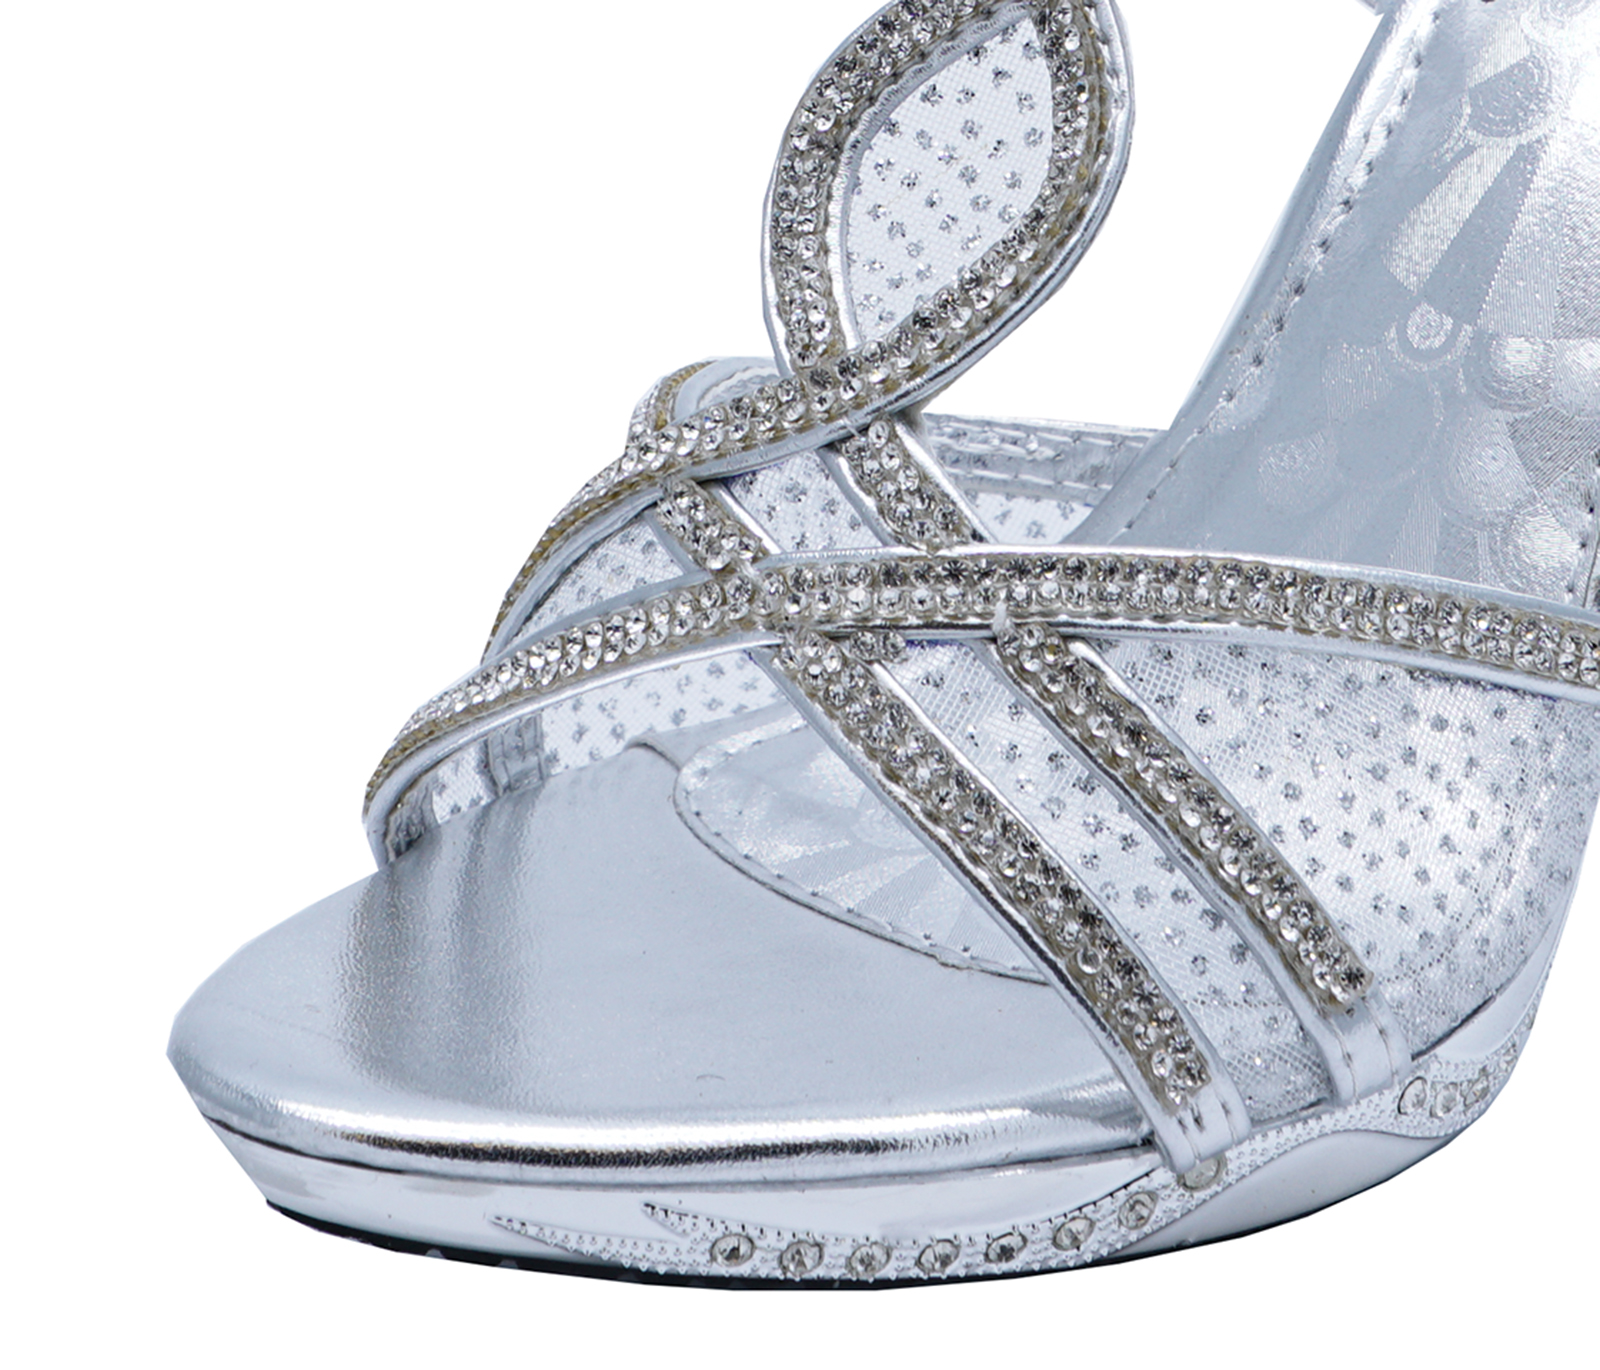 9ab6ab620ee Details about LADIES SILVER DIAMANTE WEDDING BRIDAL BRIDESMAID PARTY  ELEGANT EVENING SHOES 3-8